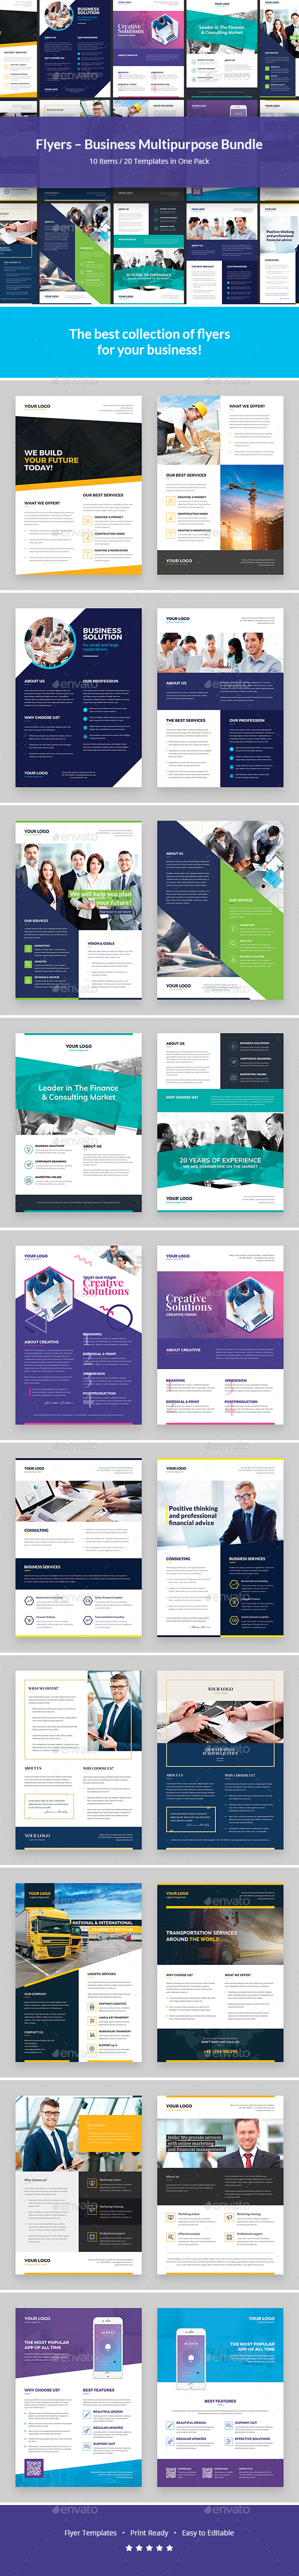 Flyers – Business Multipurpose Bundle 10 in 1 - Corporate Flyers